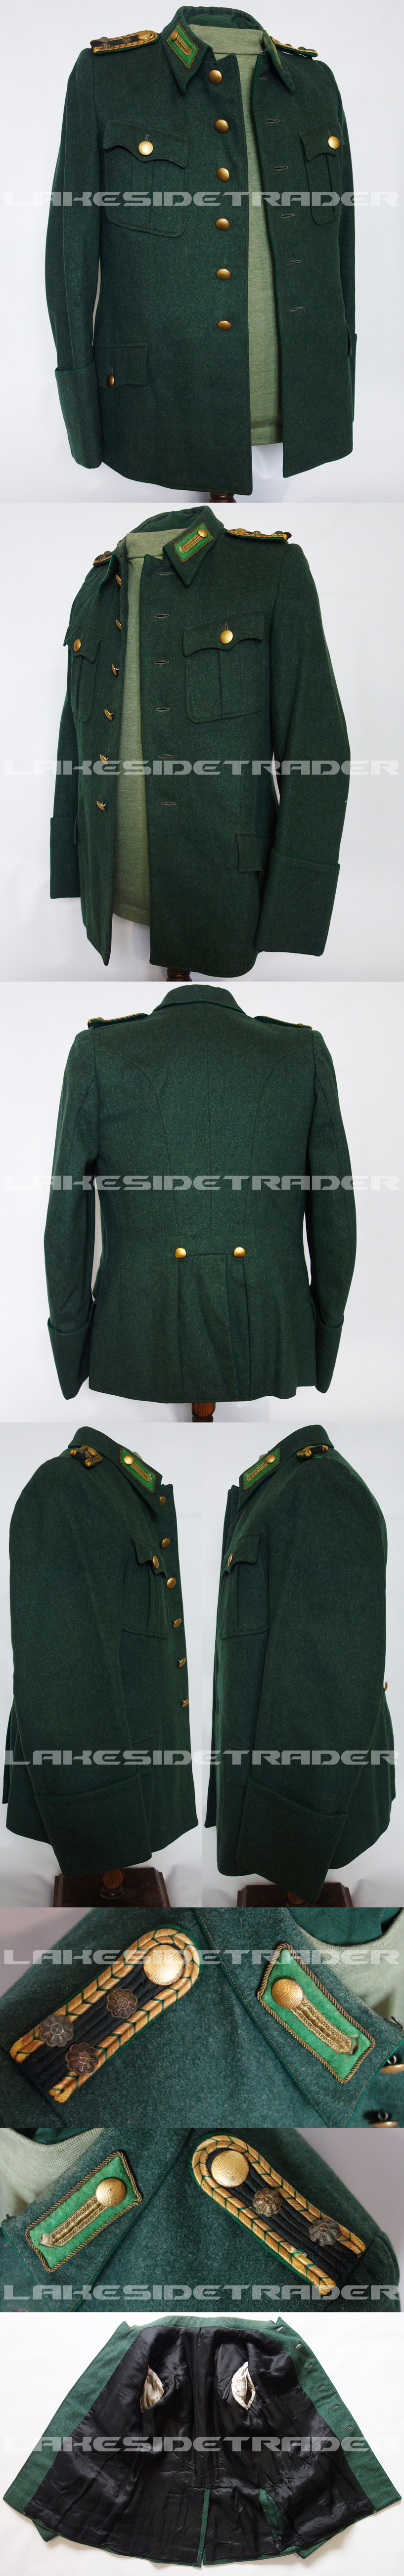 Justice/Prison Officials Service Tunic